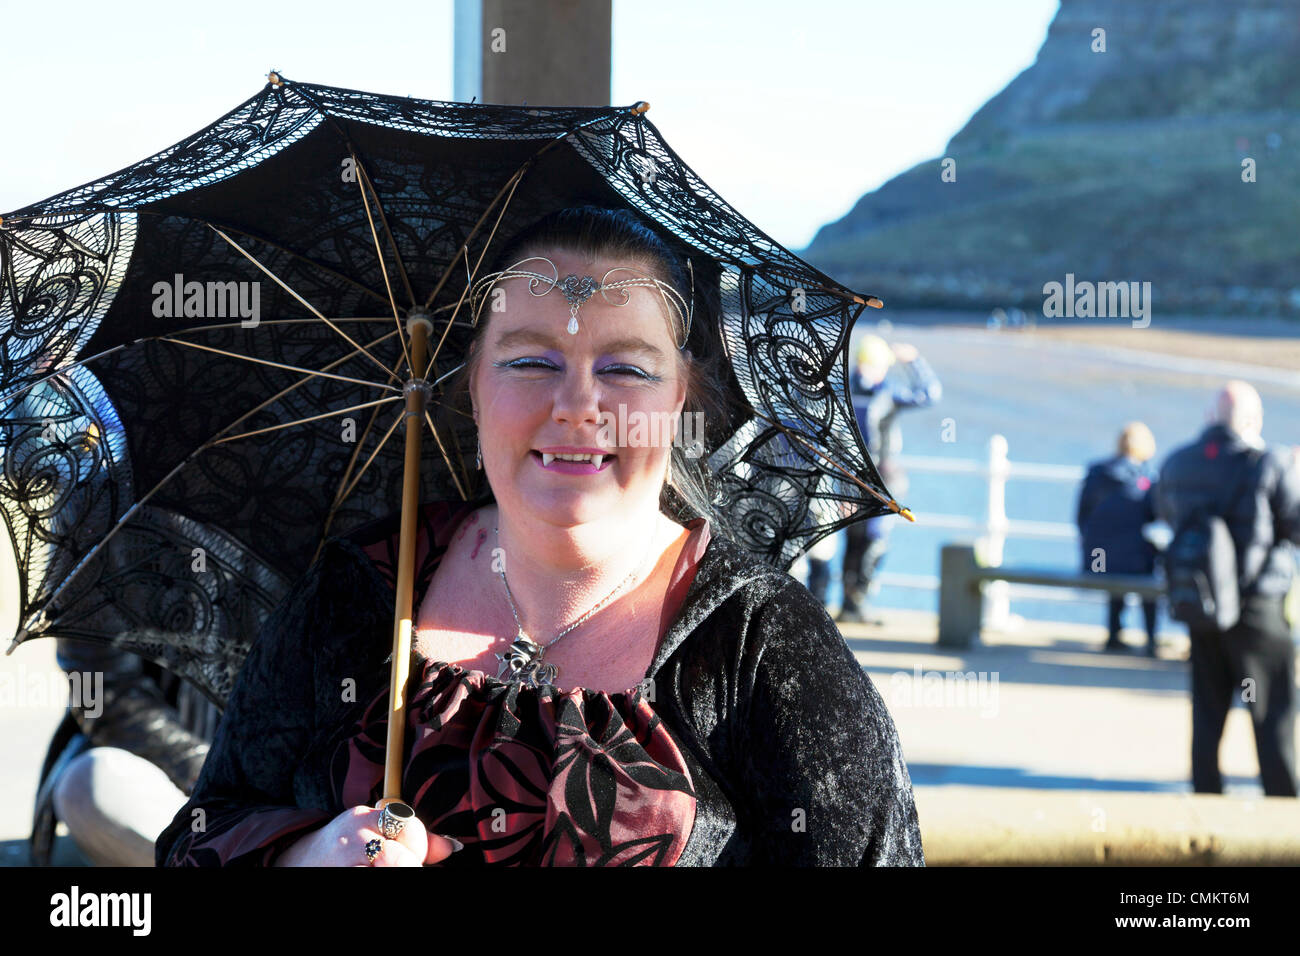 Whitby, UK. 3rd Nov, 2013. Goths at Whitby Goth Weekend Sunday 03/11/2013. Founded by Jo Hampshire in 1994, the - Stock Image